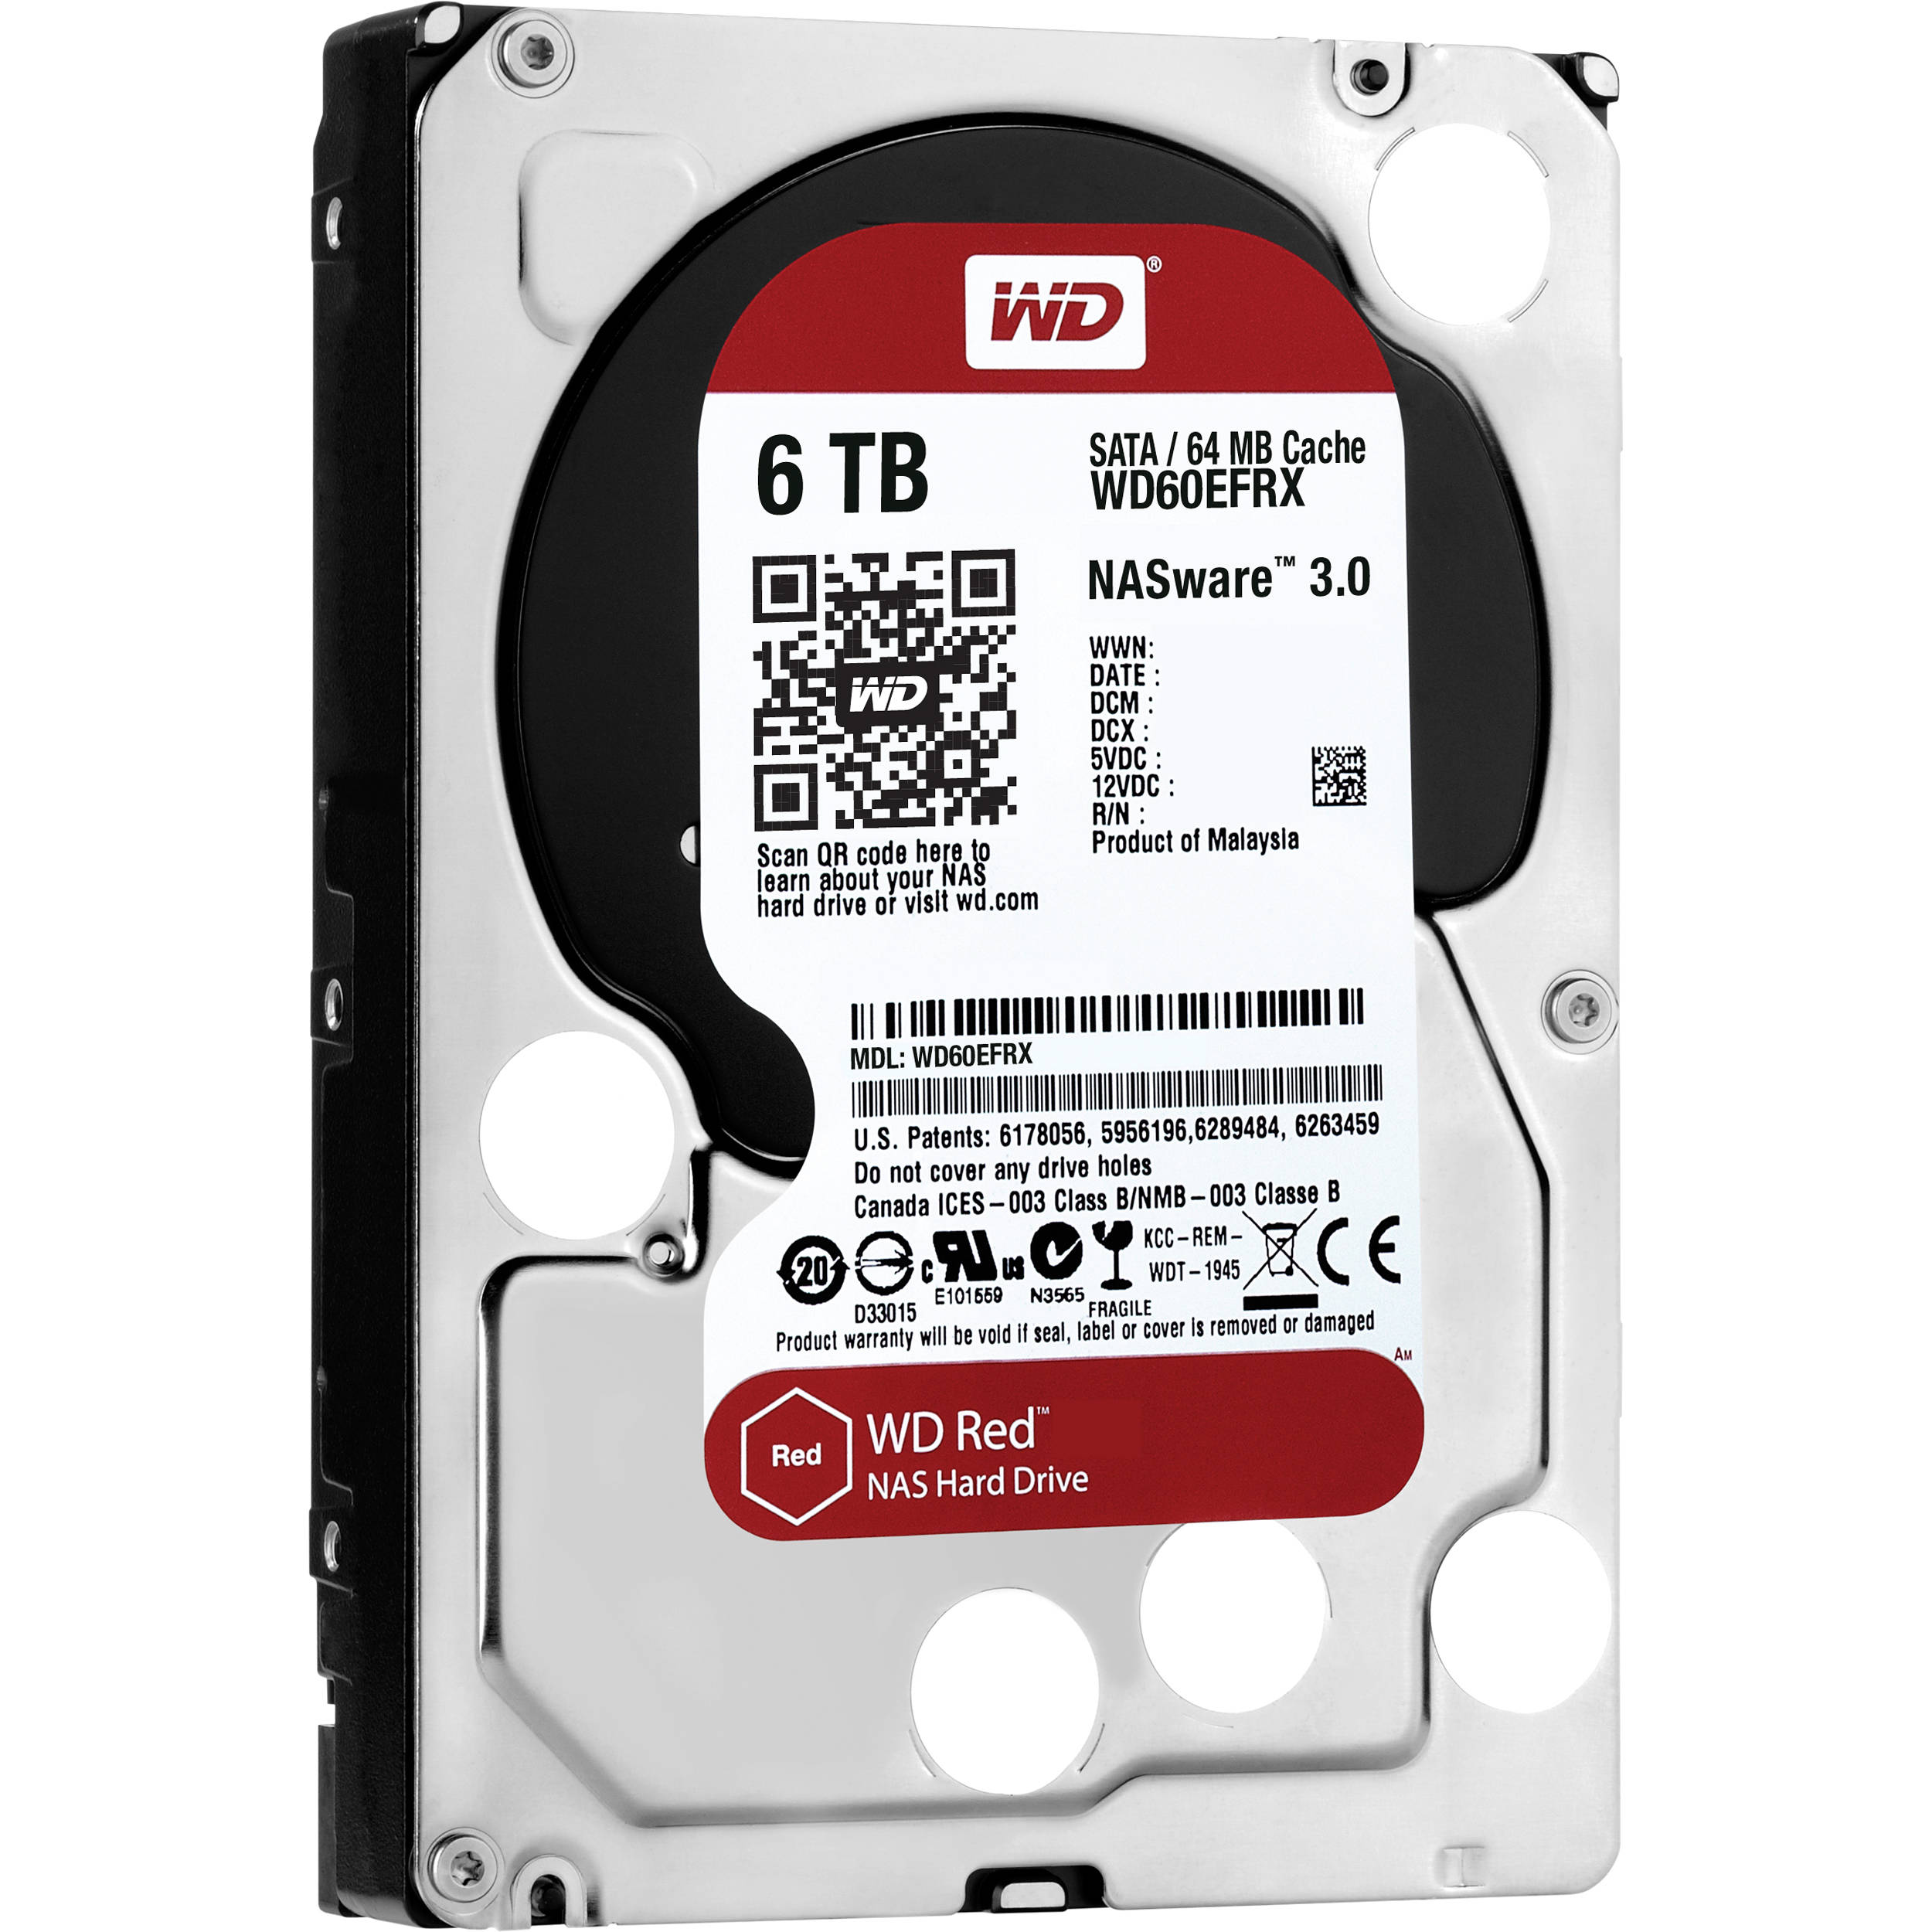 Wd 6tb Red 5400 Rpm Sata Iii 35 Internal Nas Hdd Wd60efrx Hardisk Pc 250 Gb Seagate